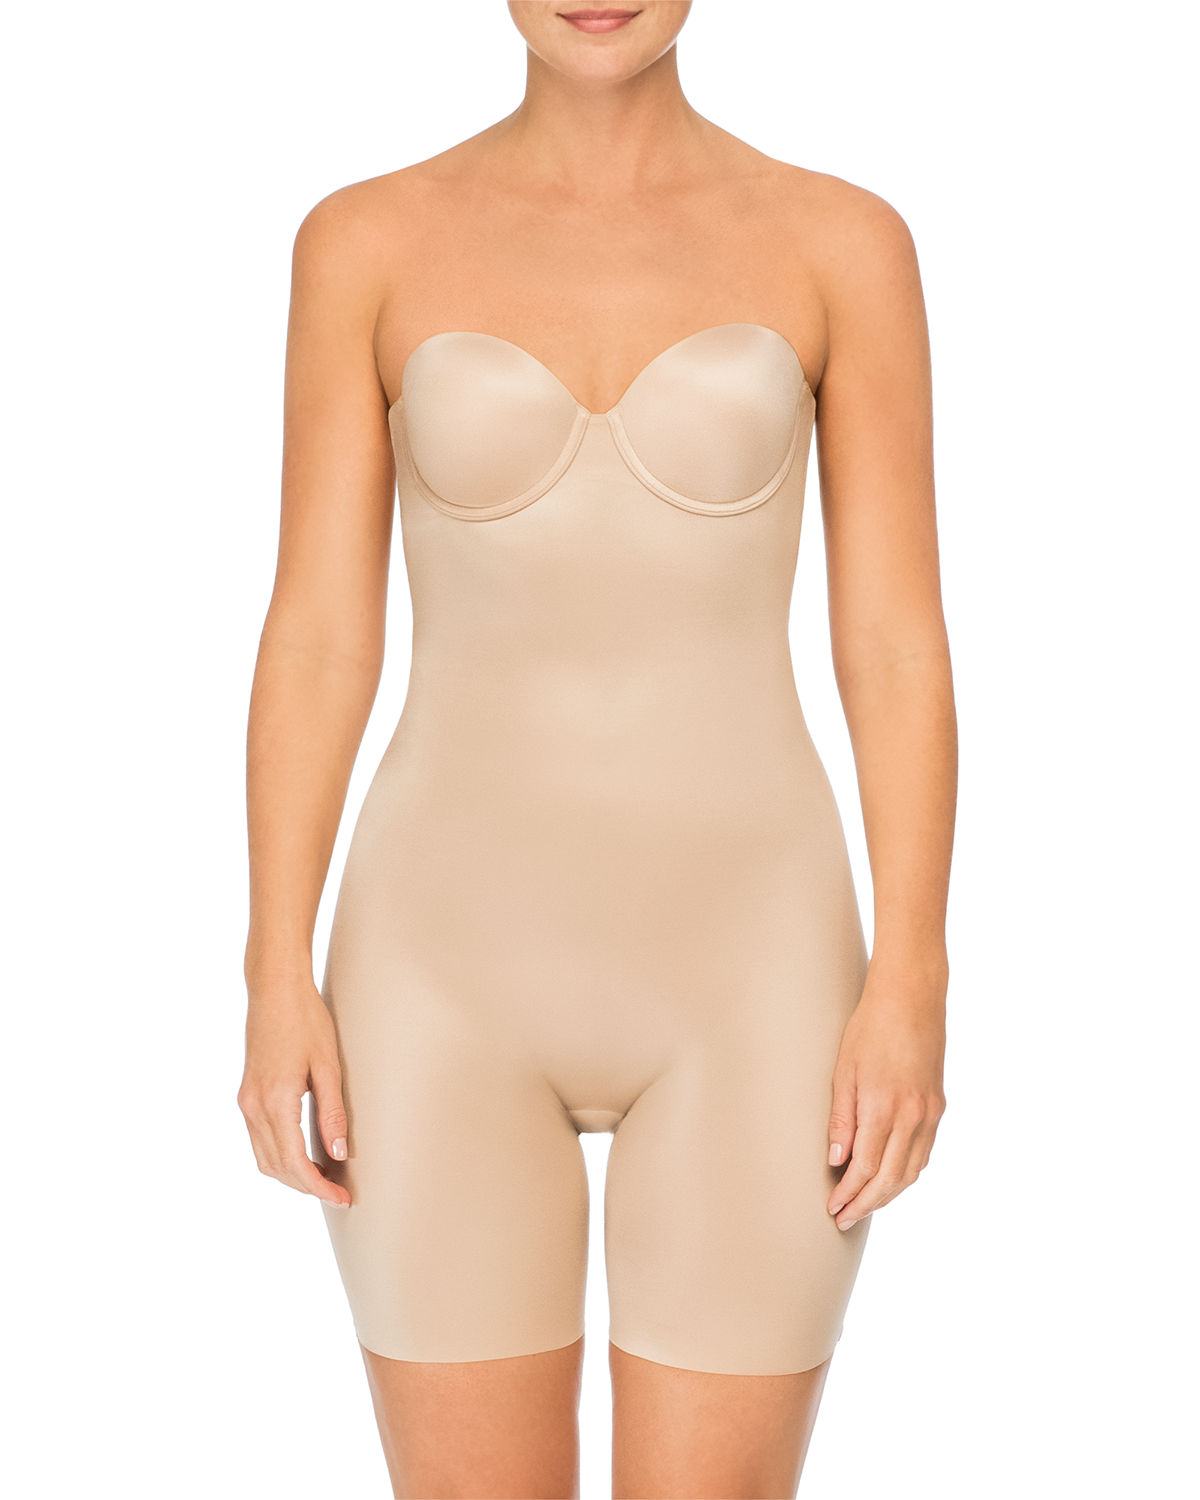 Strapless Cupped Mid-Thigh Shaping Bodysuit